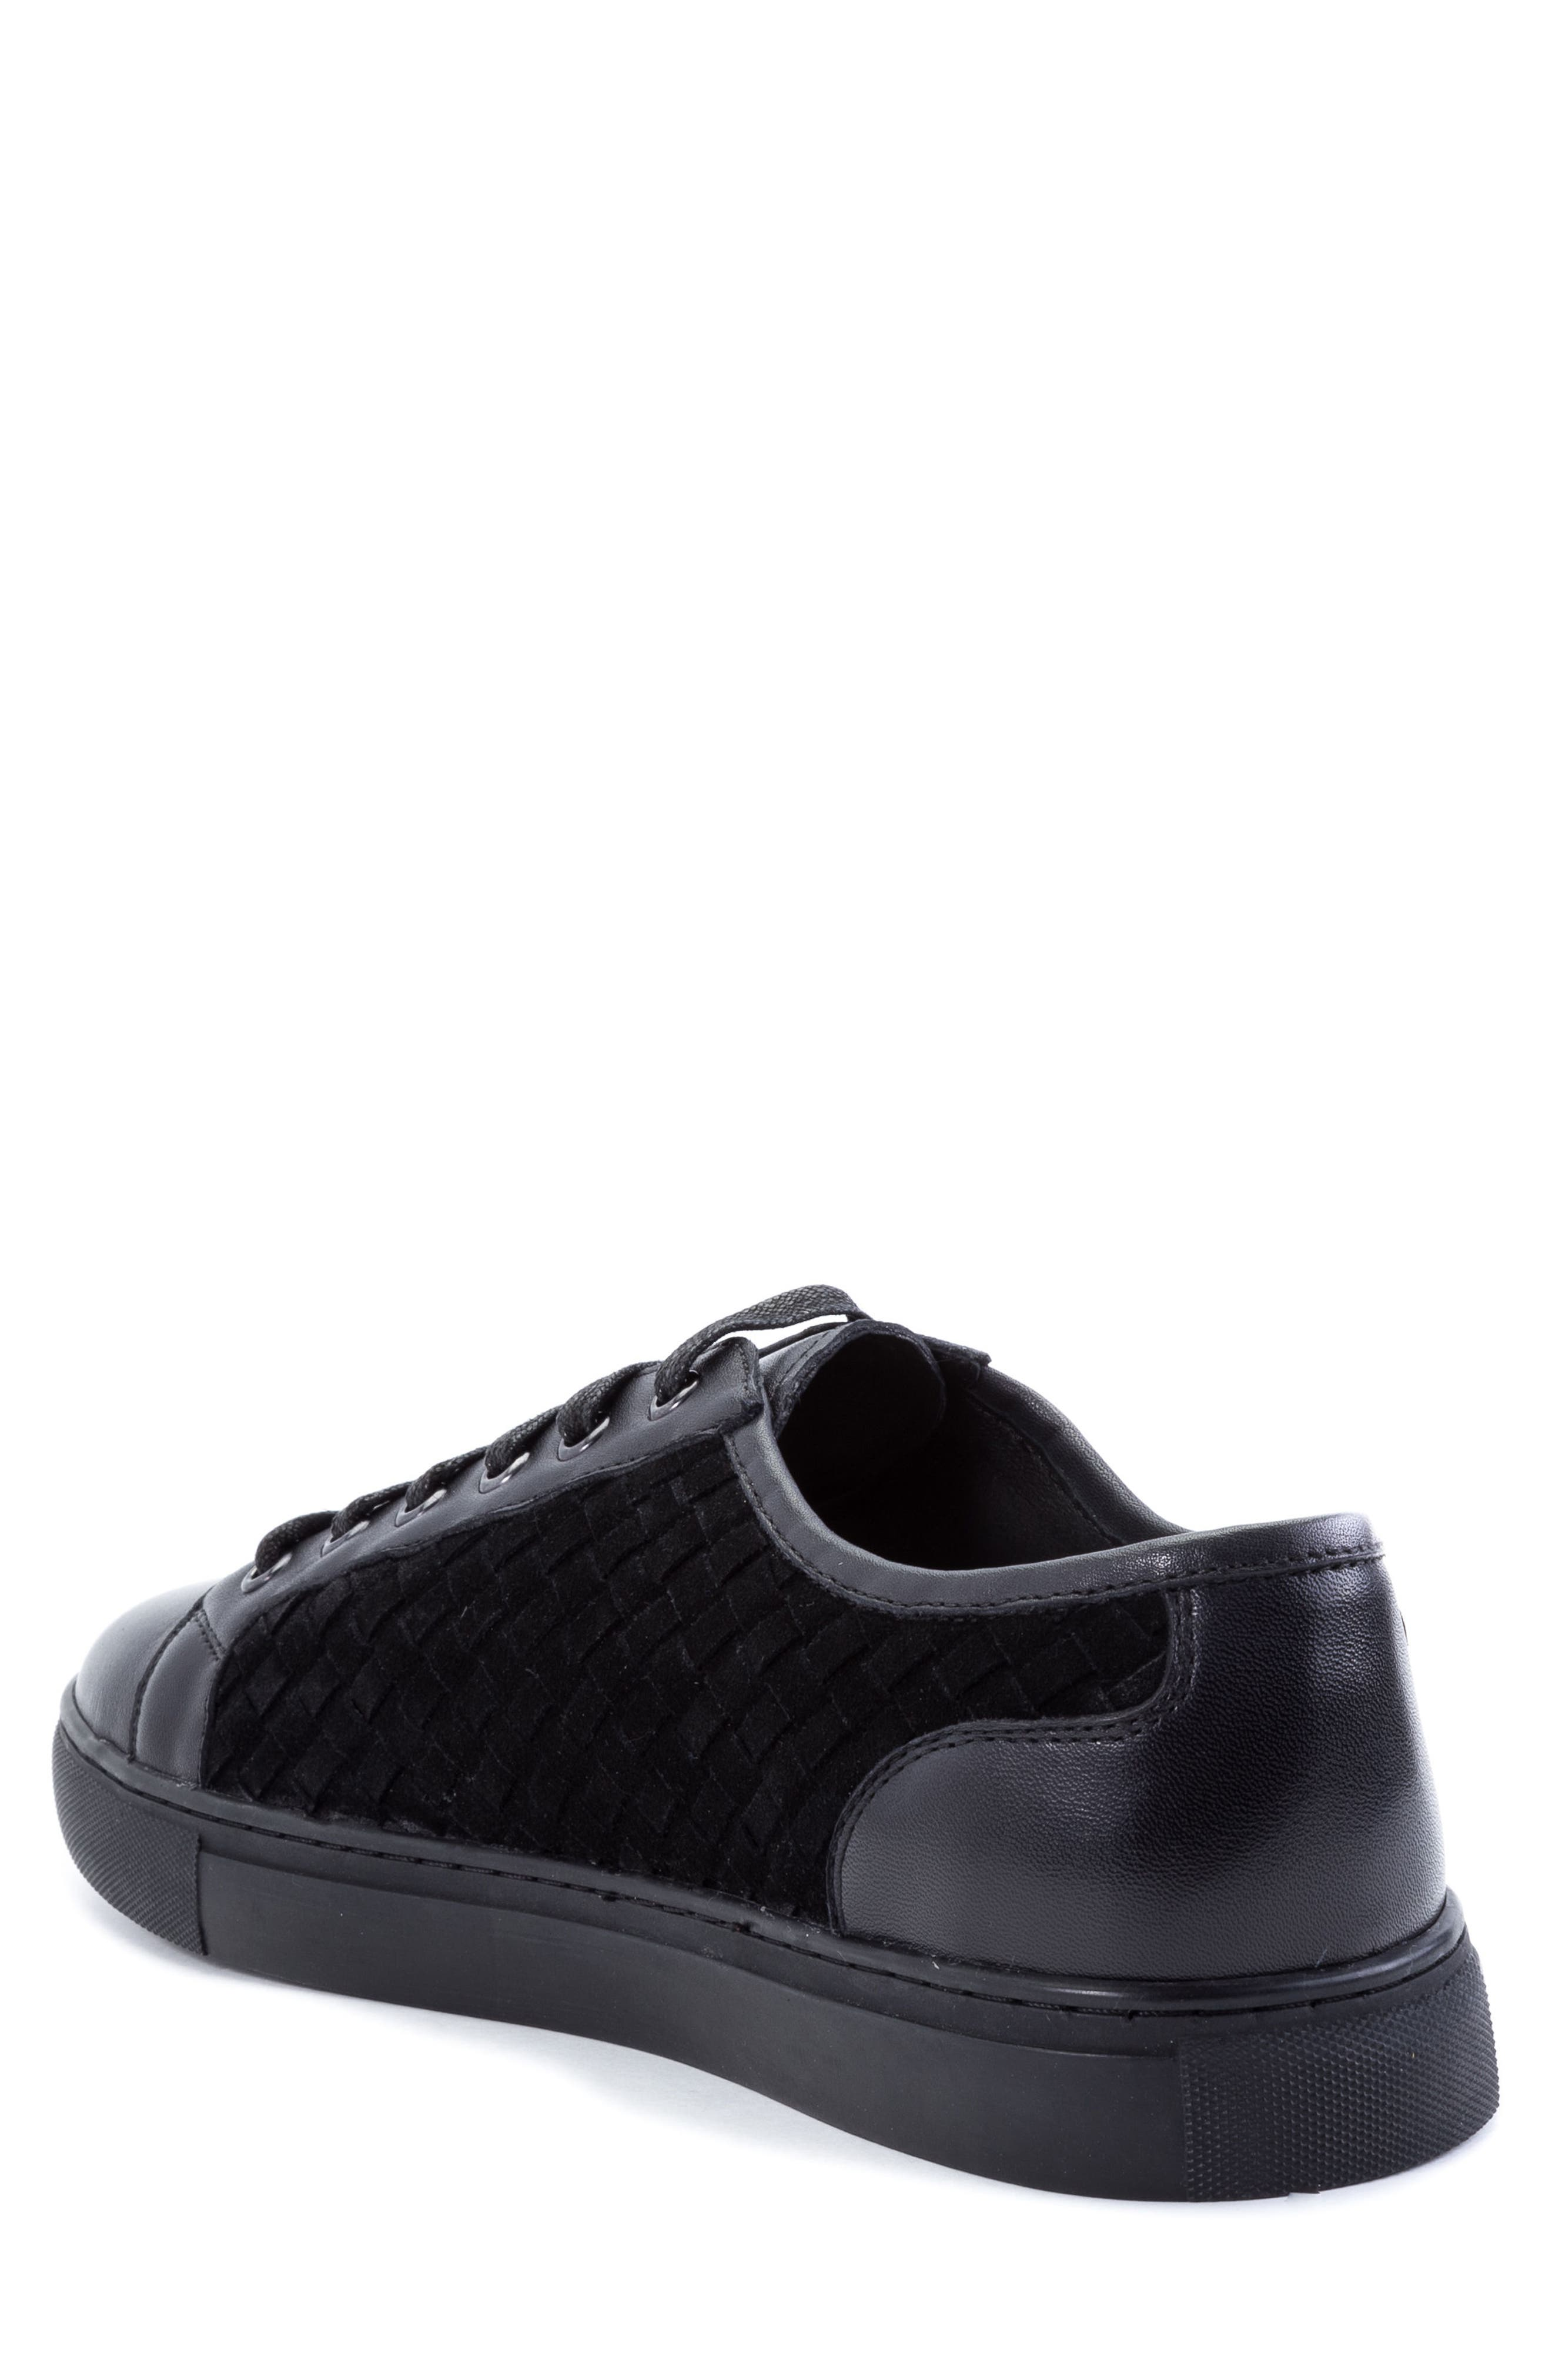 Player Woven Low Top Sneaker,                             Alternate thumbnail 2, color,                             BLACK LEATHER/ SUEDE